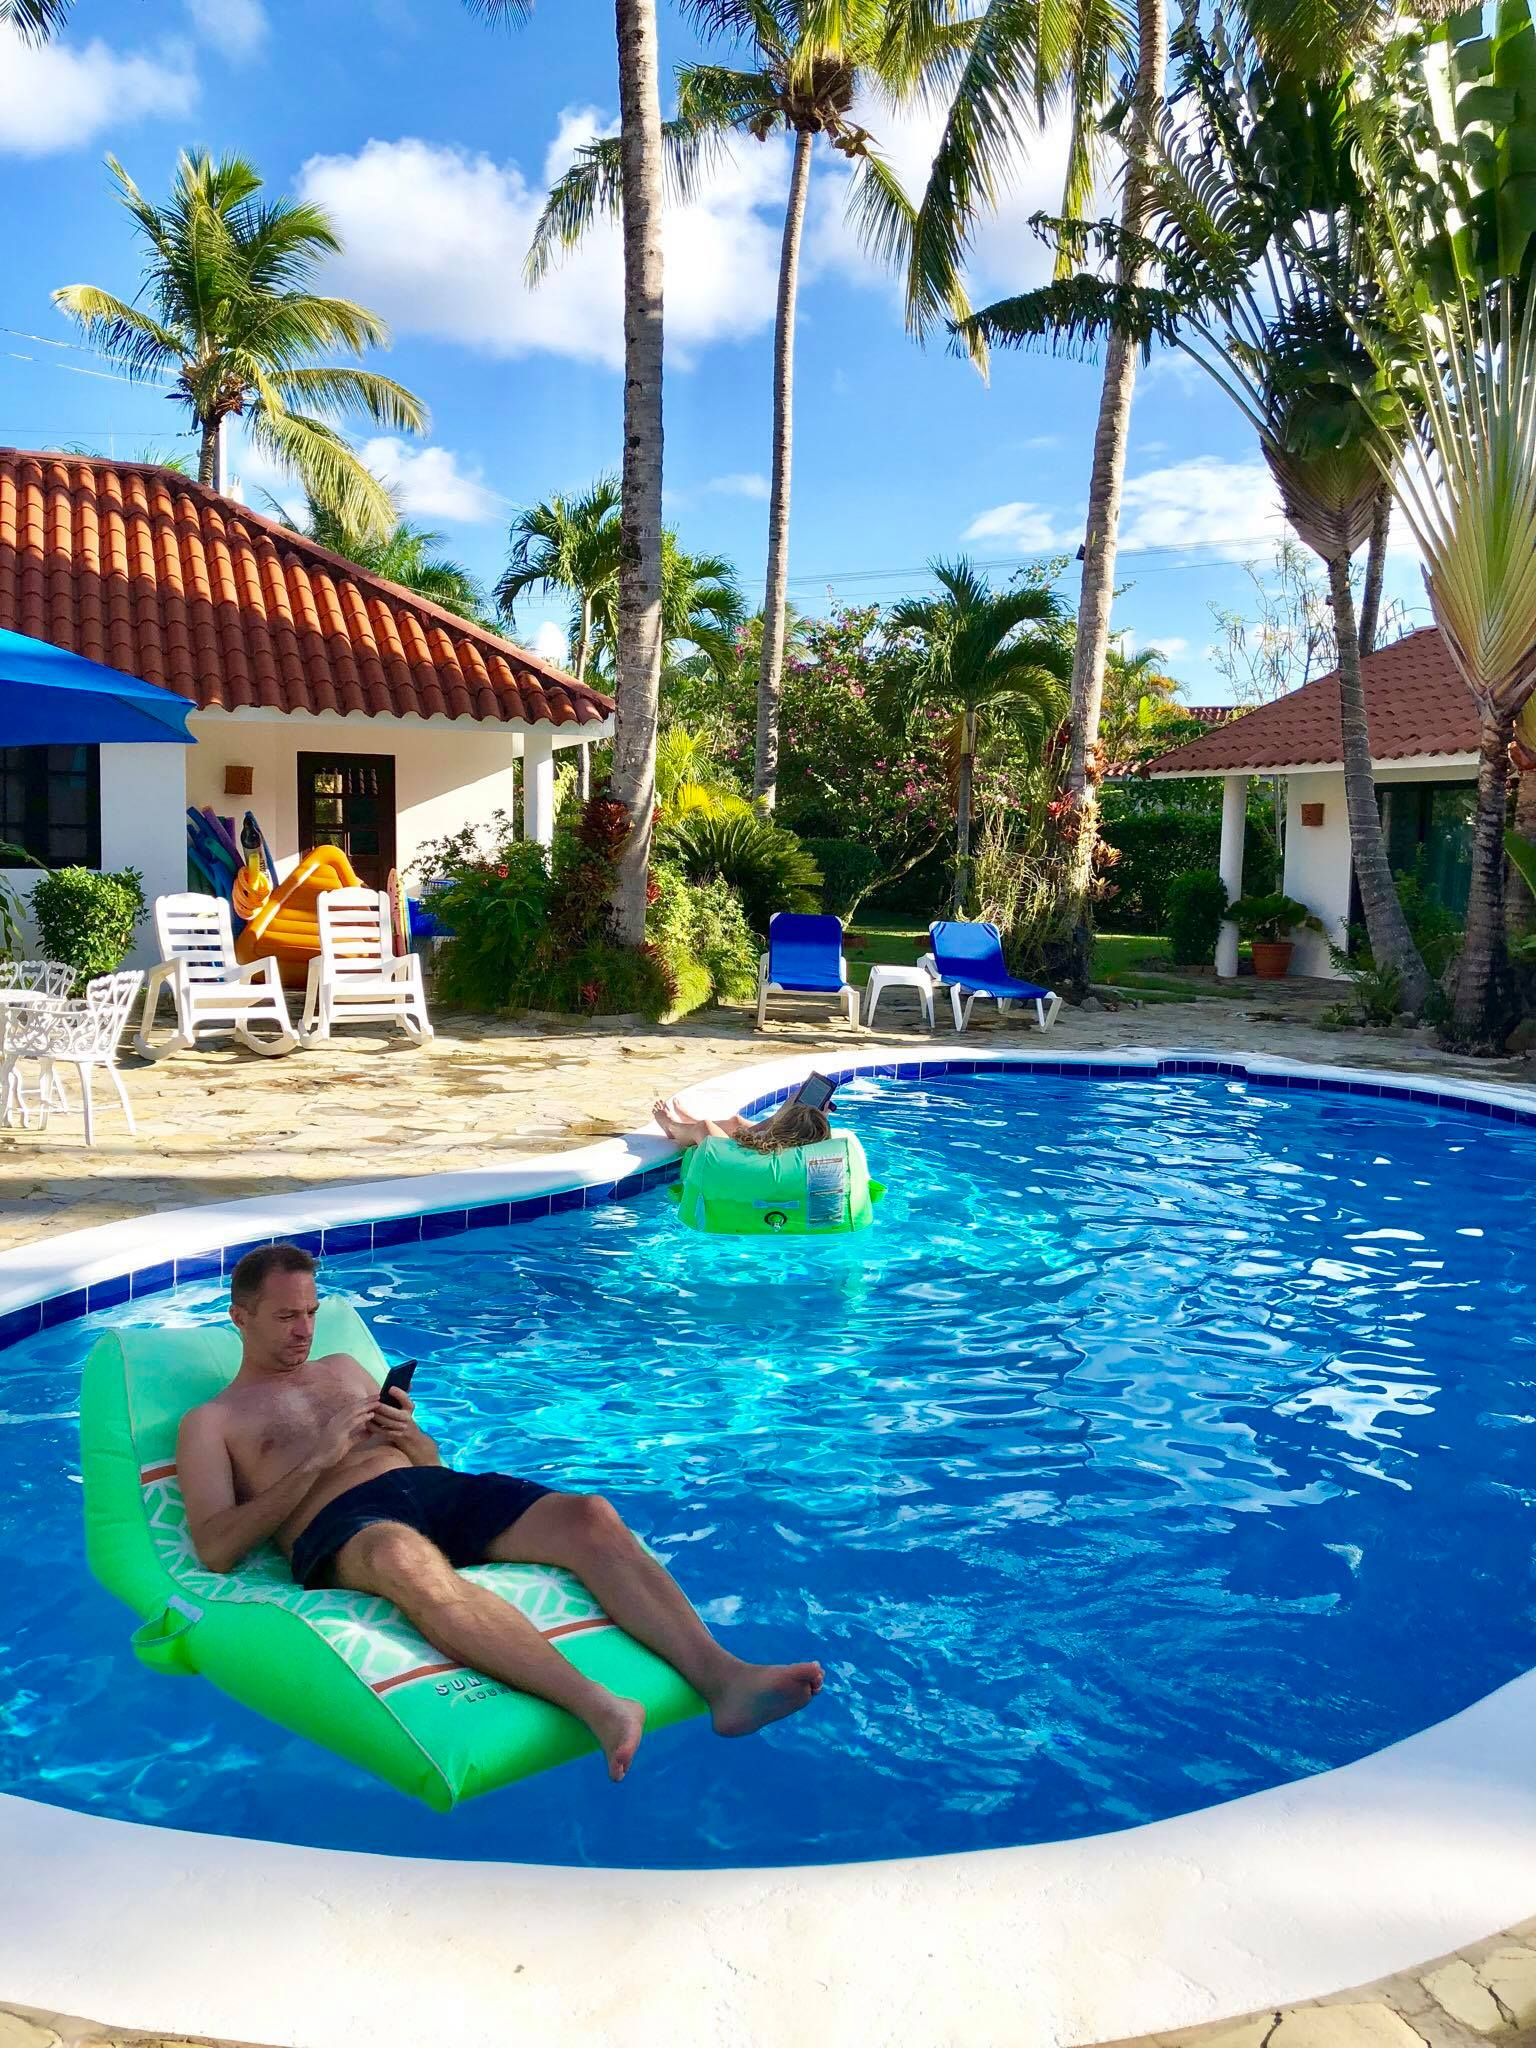 Liveaboard Life Day 257: Staycation in Sosua, Puerto Plata 😍